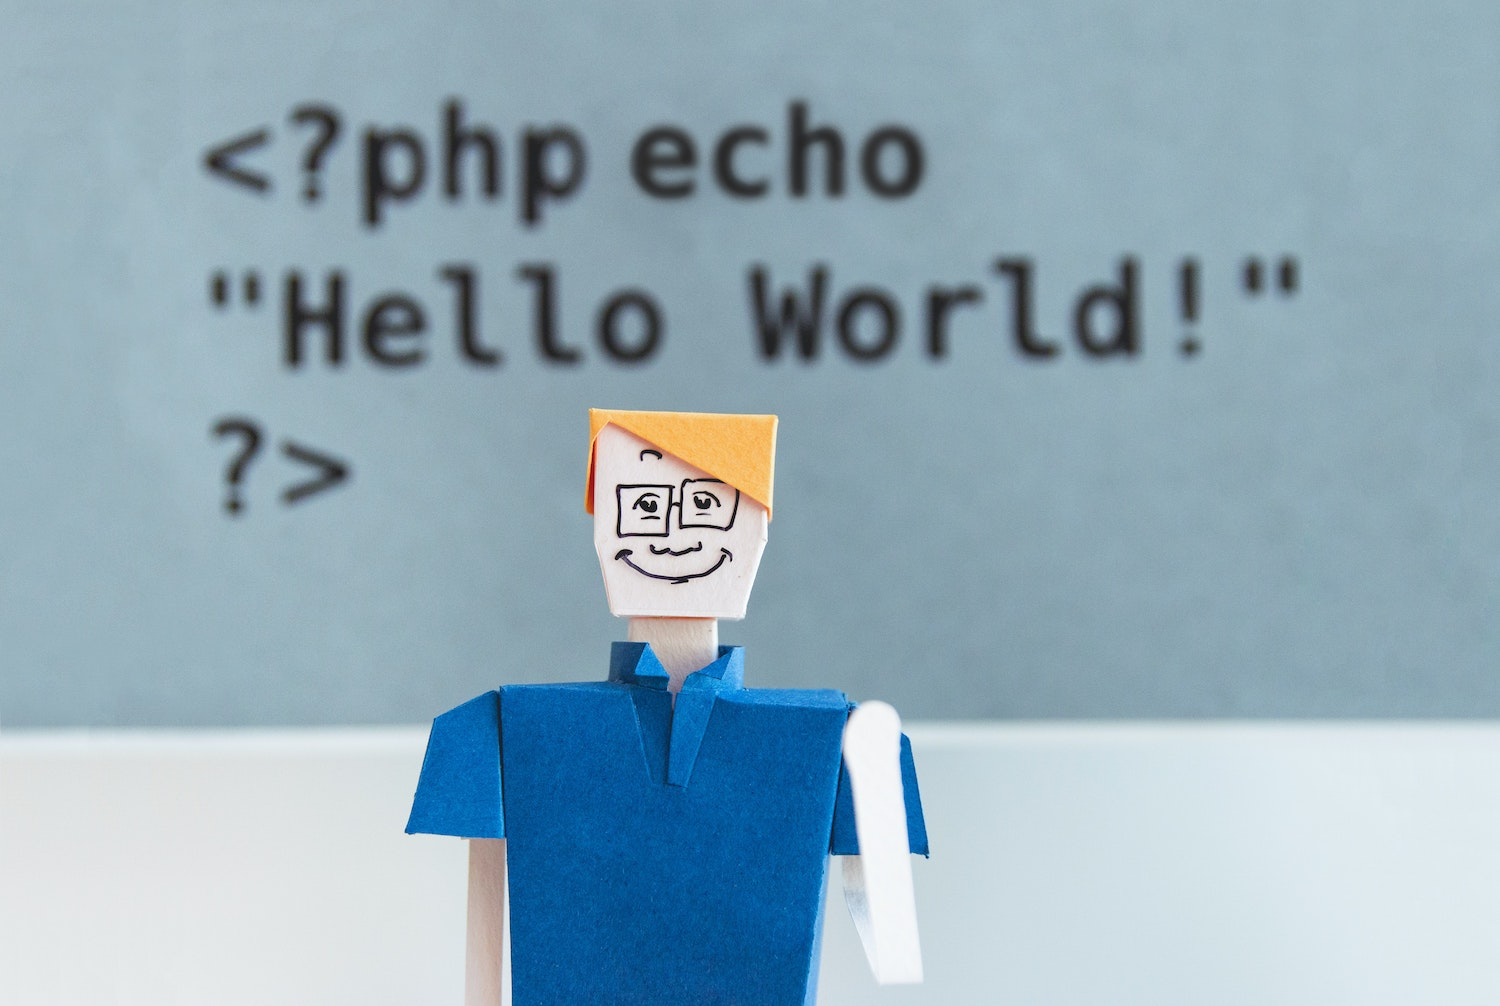 PHP, Hypertext Preprocessor (originally Personal Home Pages) is one of a programming languages a backend developer should know.